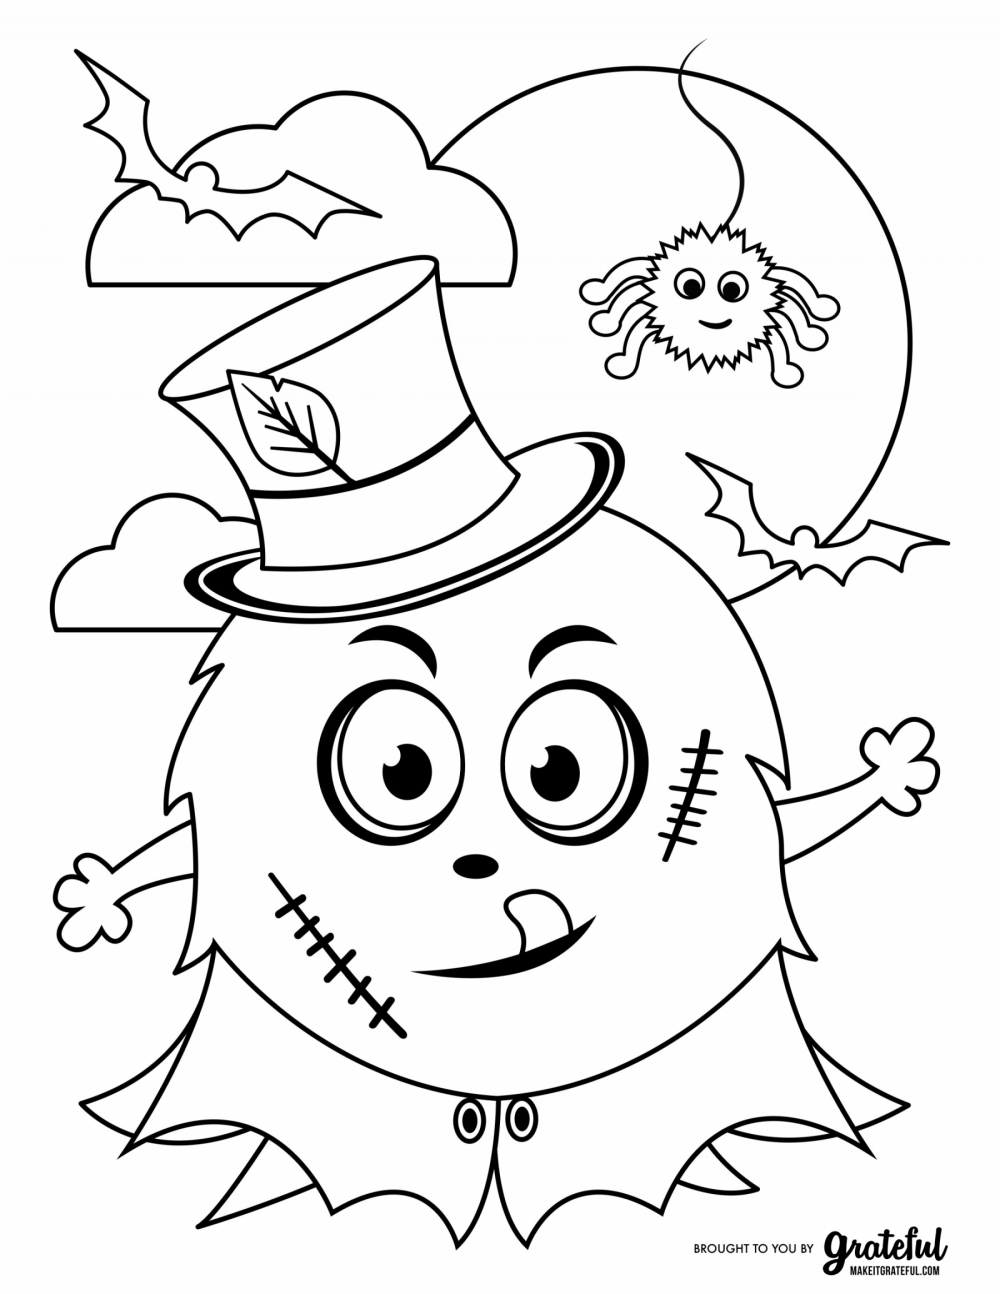 Halloween dog coloring page | Halloween coloring pages, Halloween ... | 1294x1000